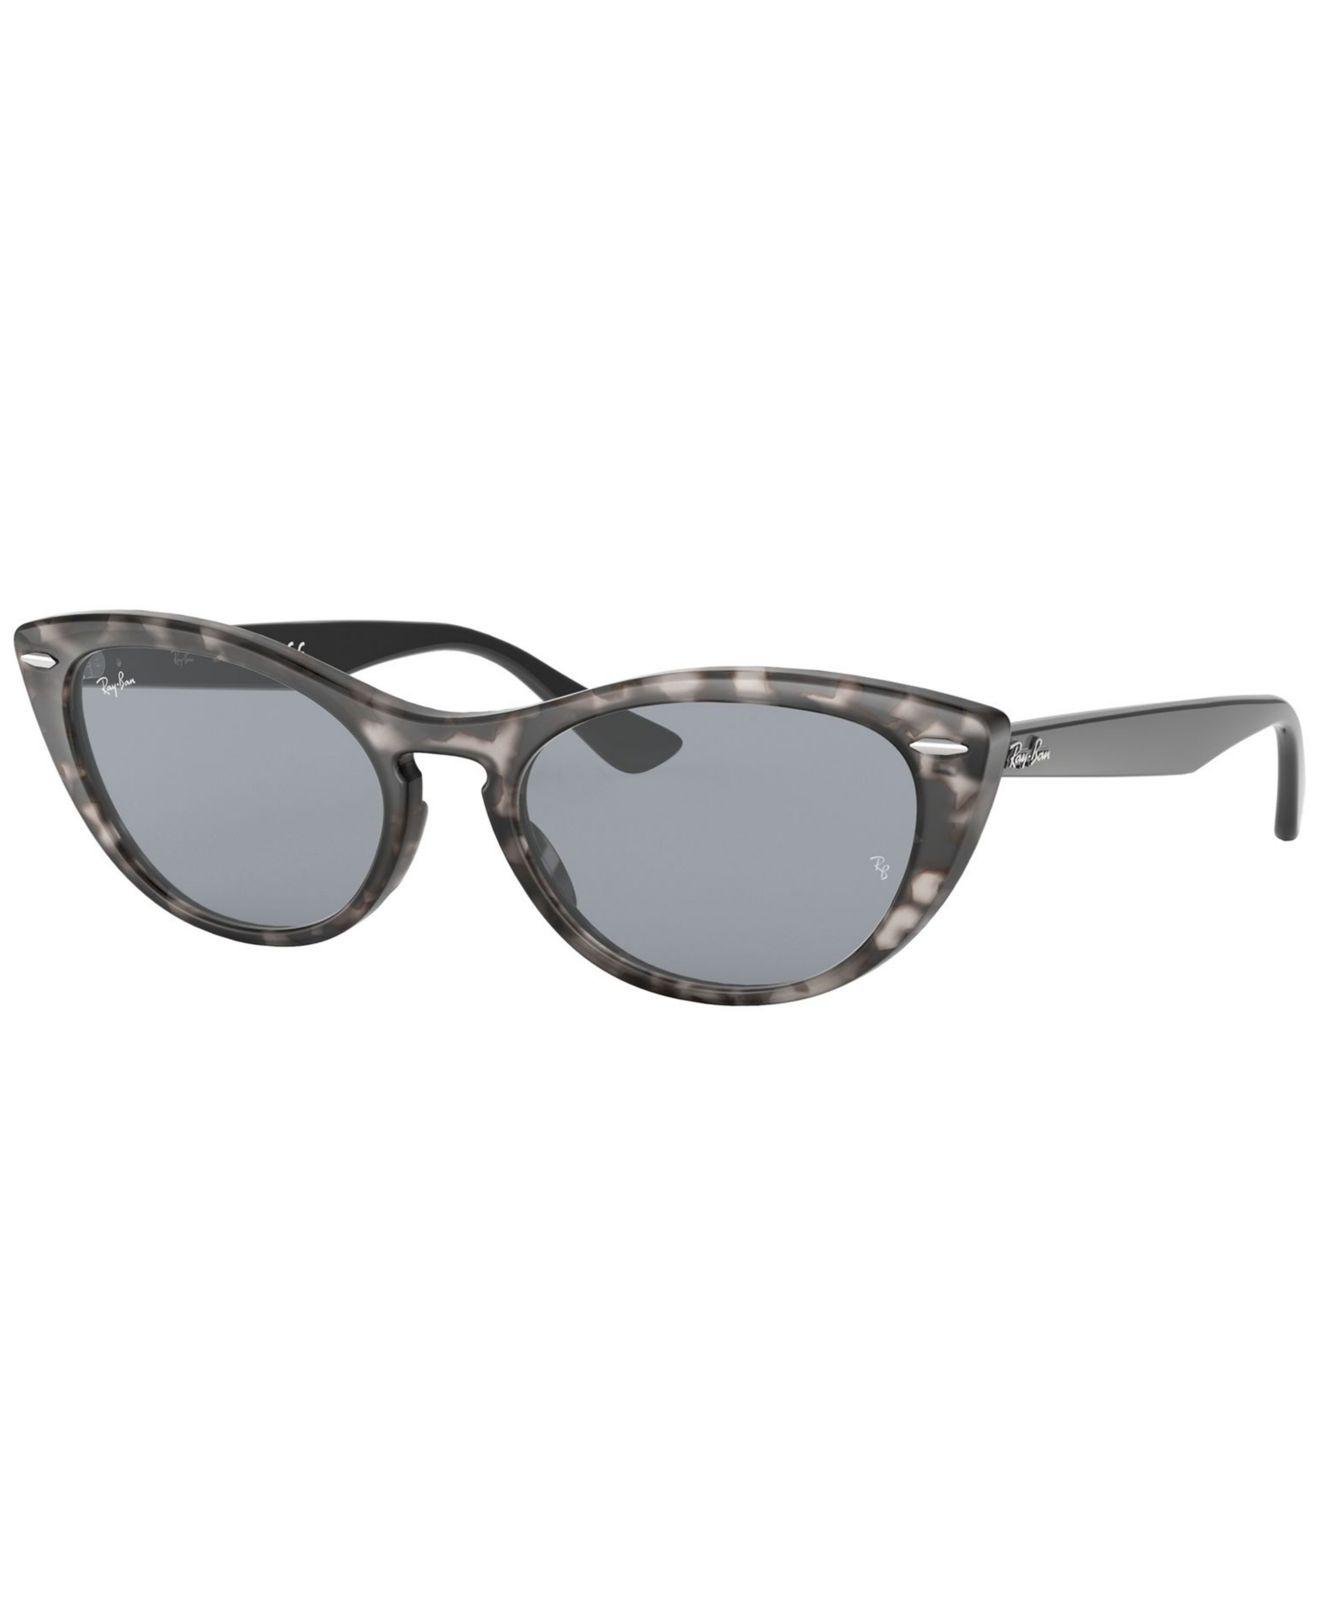 6d78e0c5d93 Lyst - Ray-Ban Sunglass Rb4314n 54 Nina in Gray